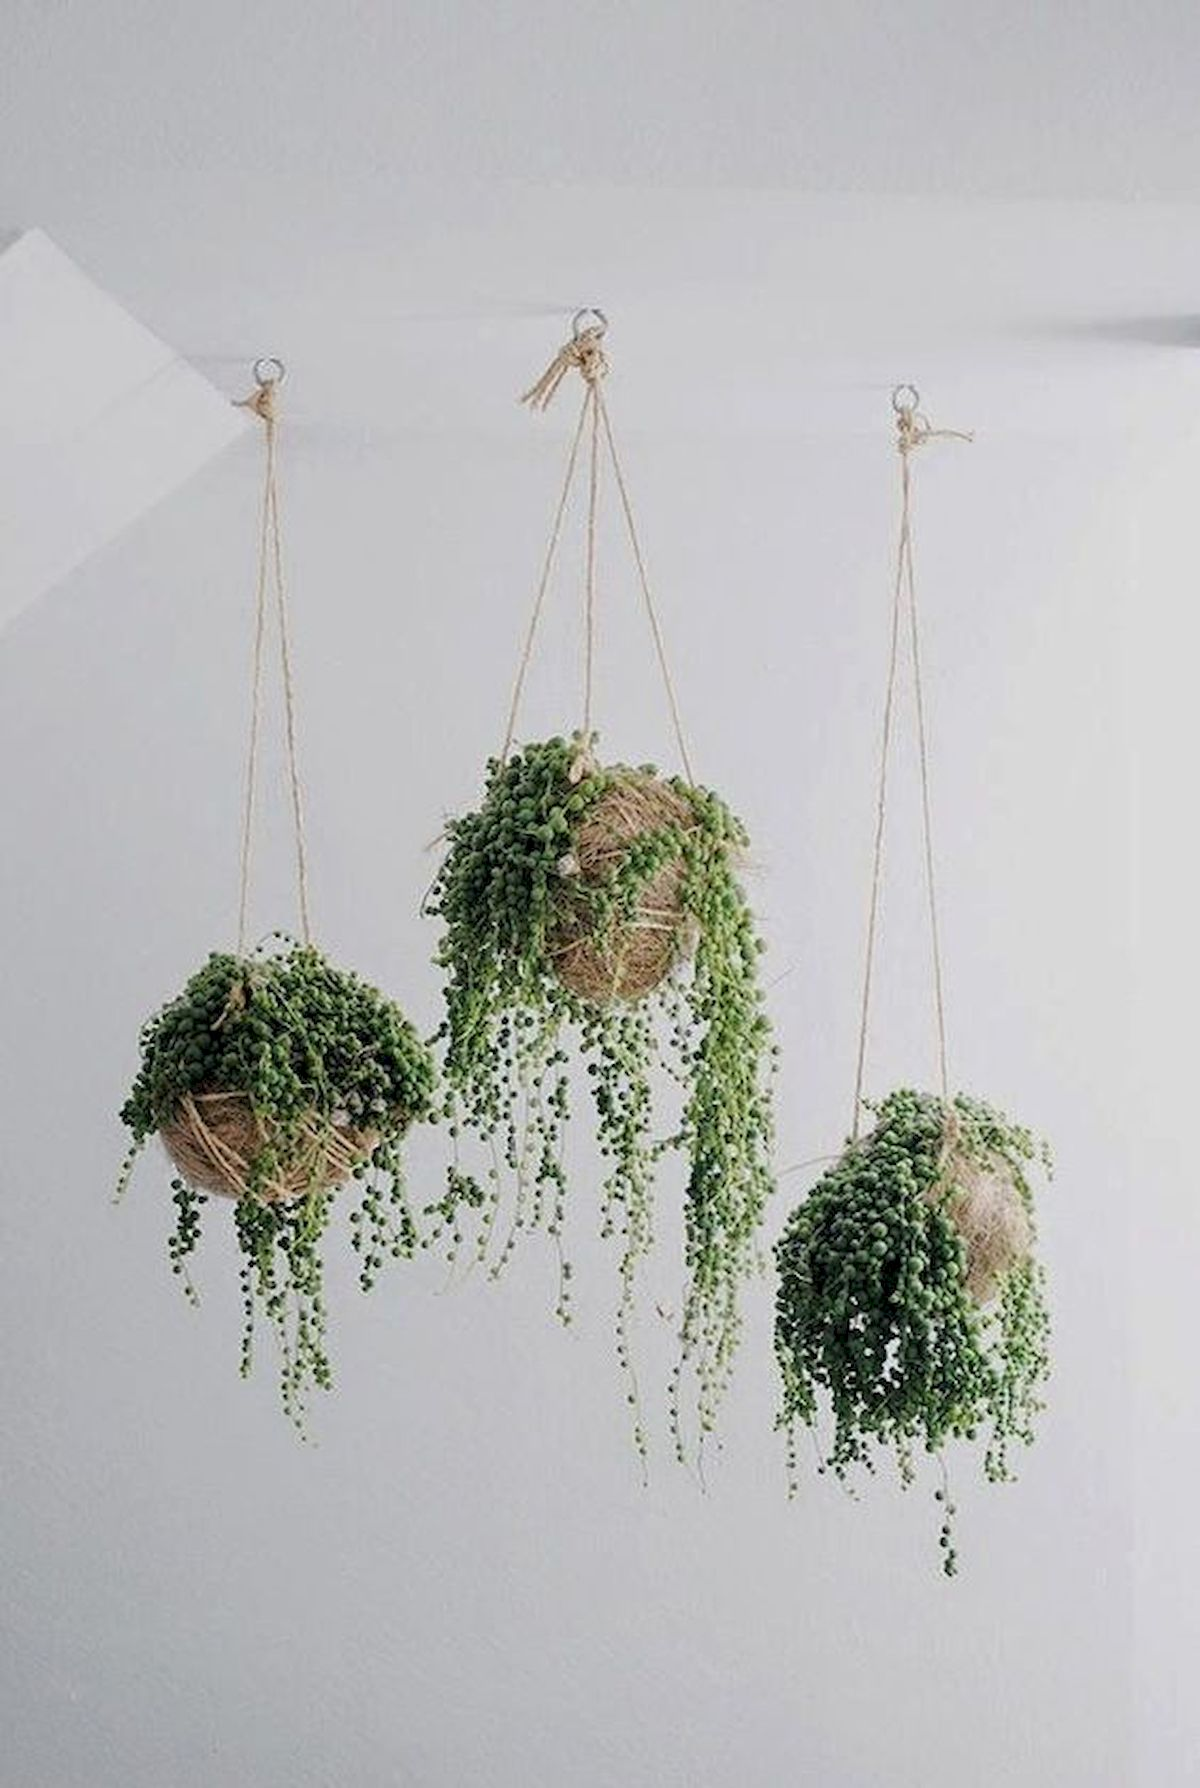 30 Cute Hanging Plants To Decorate Your Interior Home (4)